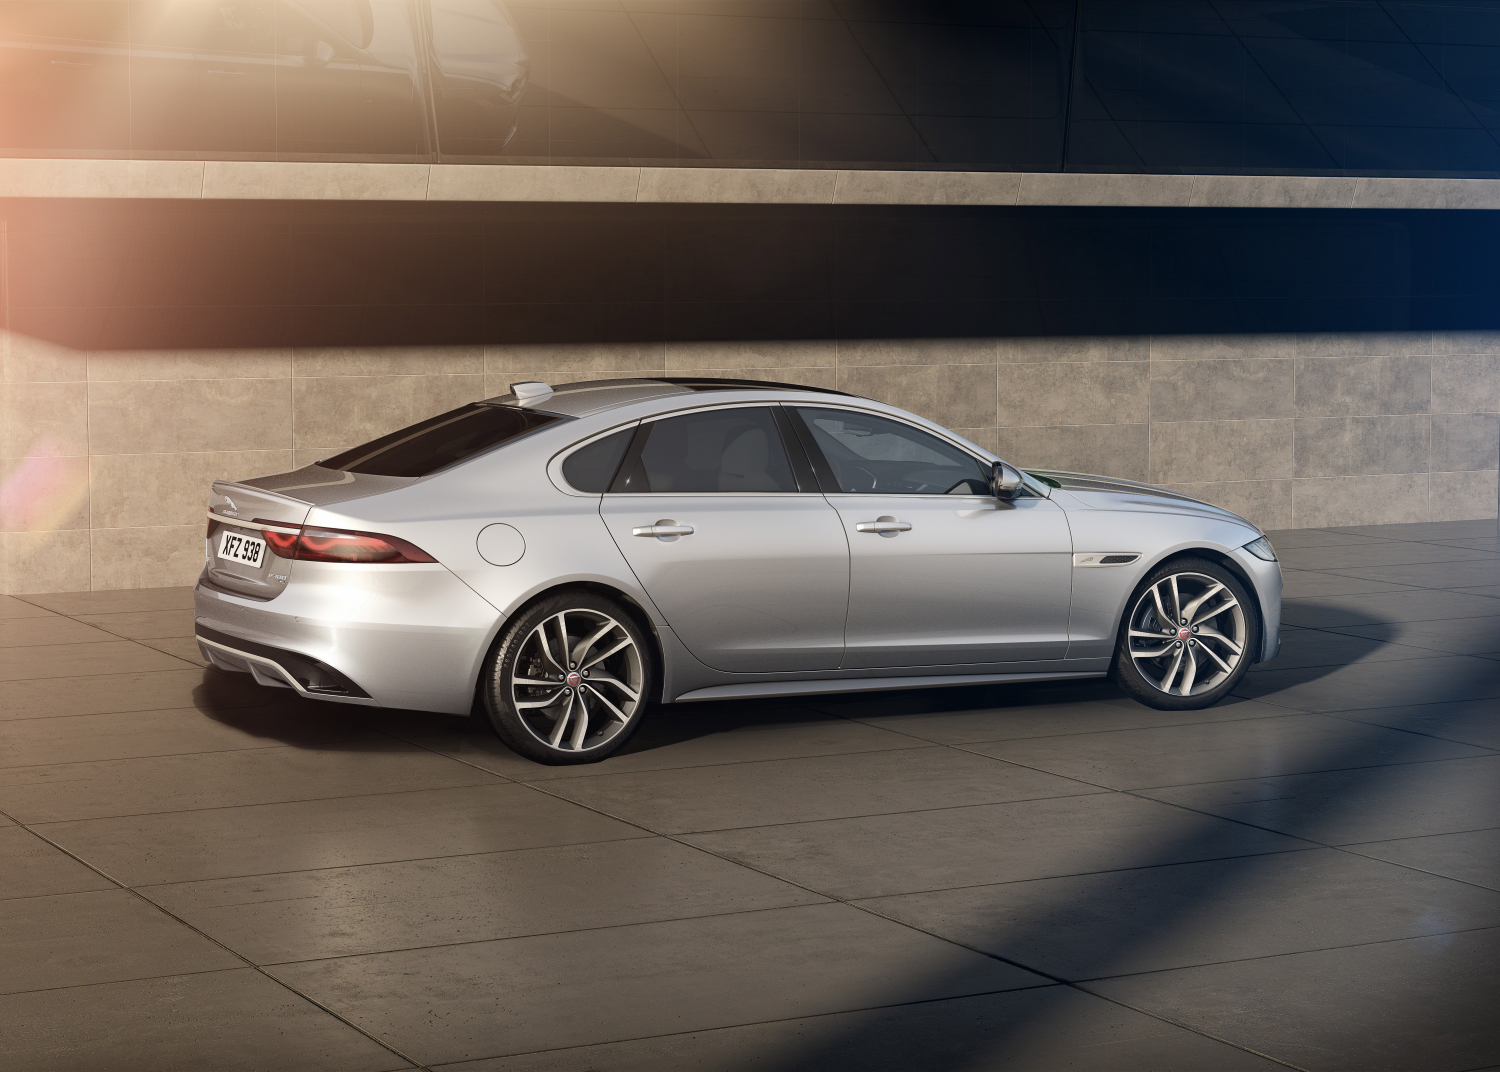 XF Saloon R-Dynamic HSE – Hakuba Silver with Light Oyster Interior